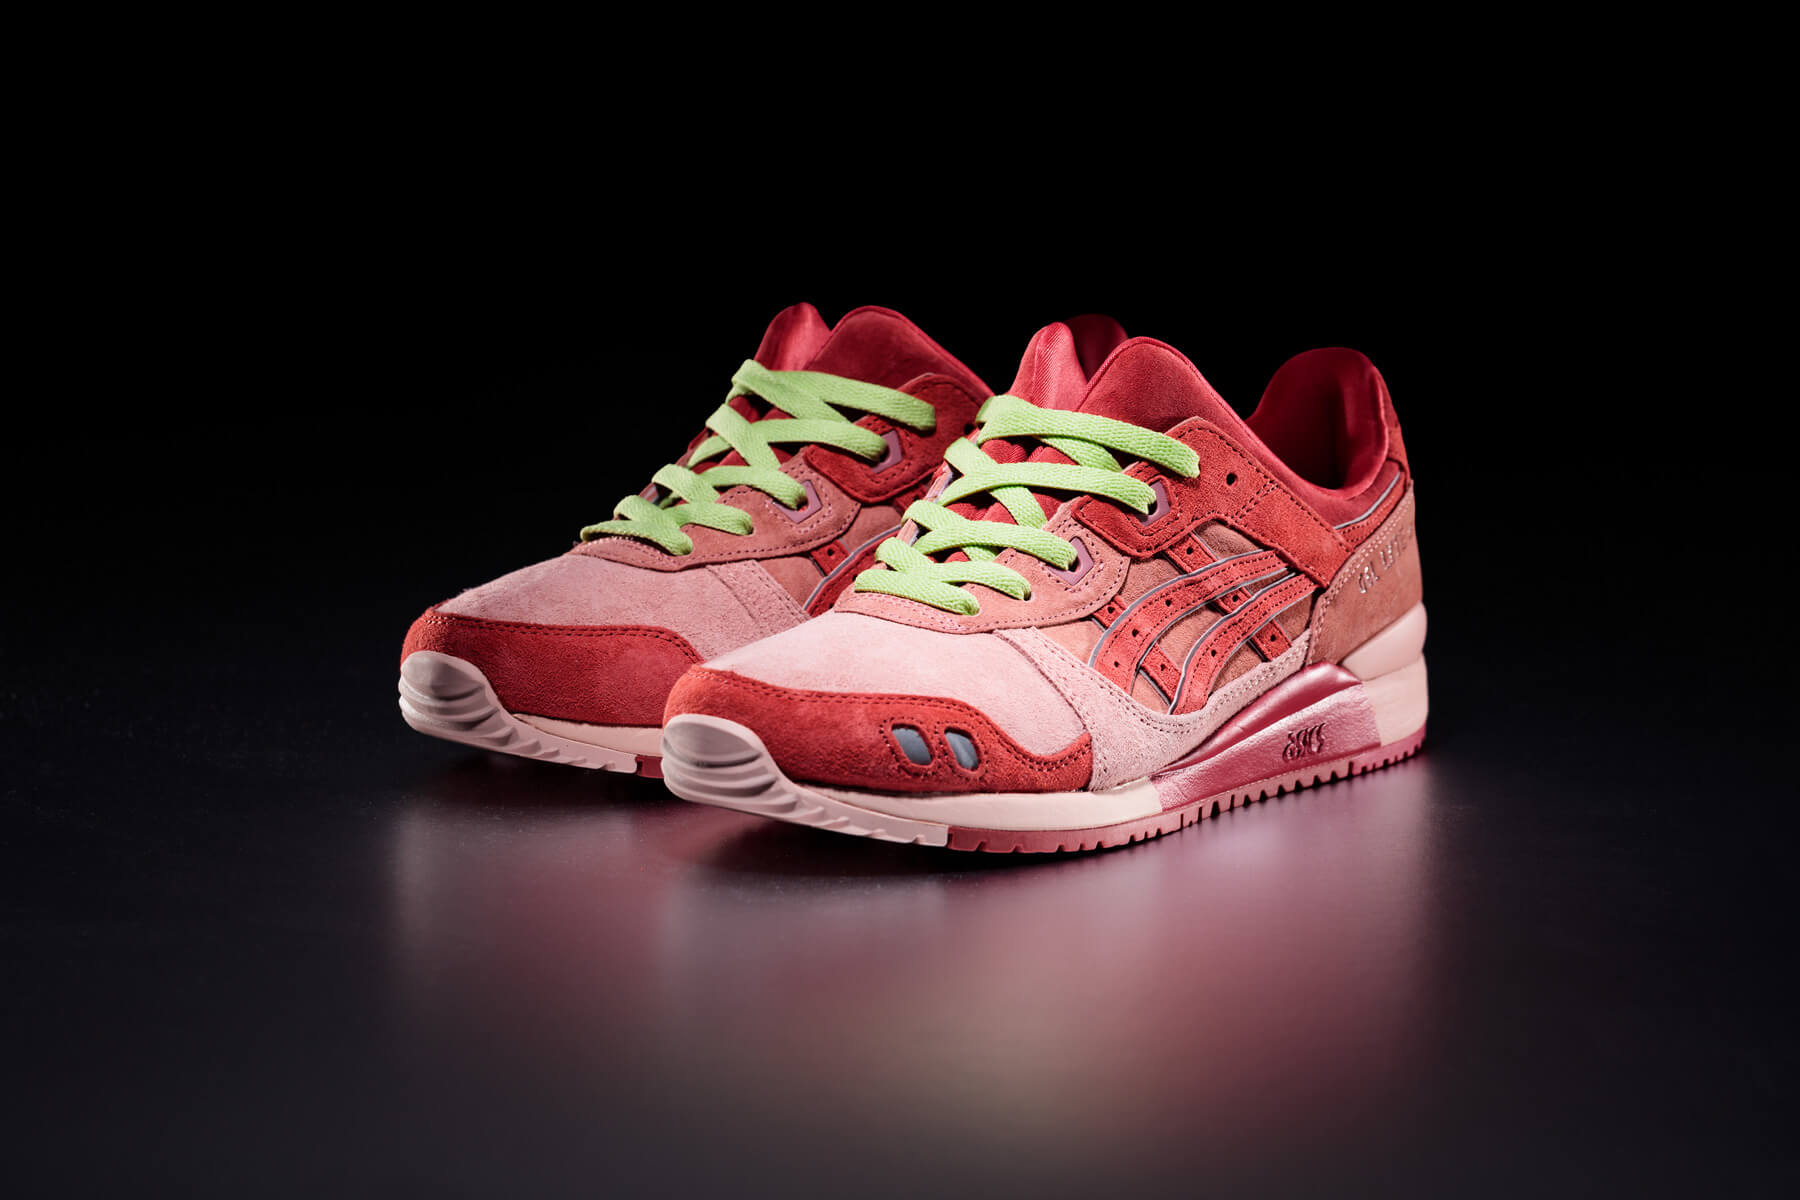 """ASICS SportStyle x Concepts - GEL-LYTE III OG - """"Otoro"""" - 1203A121-700 - Coral Cloud /Pure Silver with wasabi lacing"""